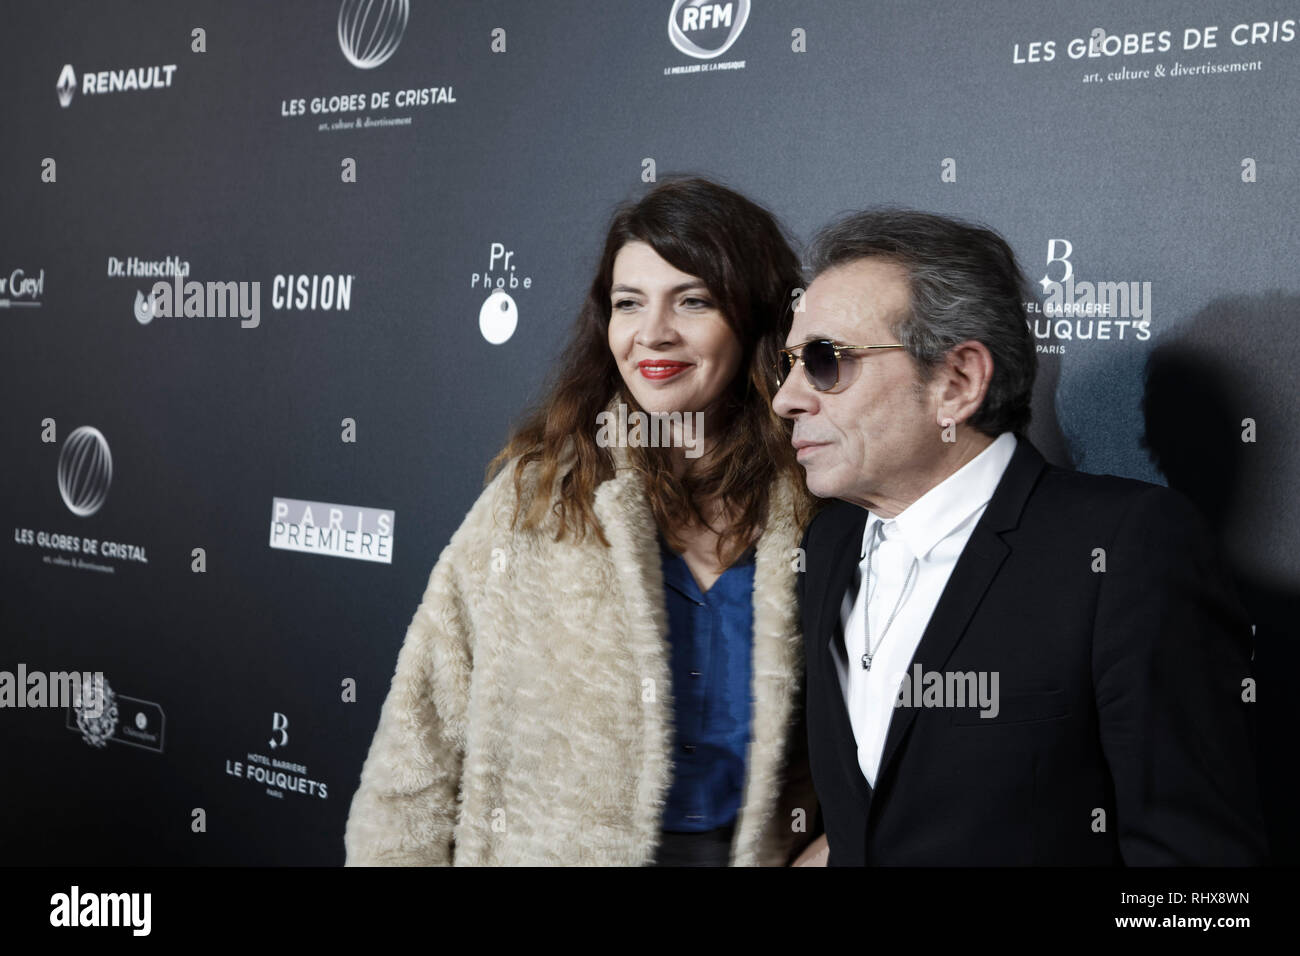 Paris, France. 4th Feb, 2019. Candice de La Richardière and Philippe Manœuvre attend the 14th Crystal Globes Ceremony at Salle Wagram on February 4, 2019 in Paris, France. Credit: Bernard Menigault/Alamy Live News Stock Photo